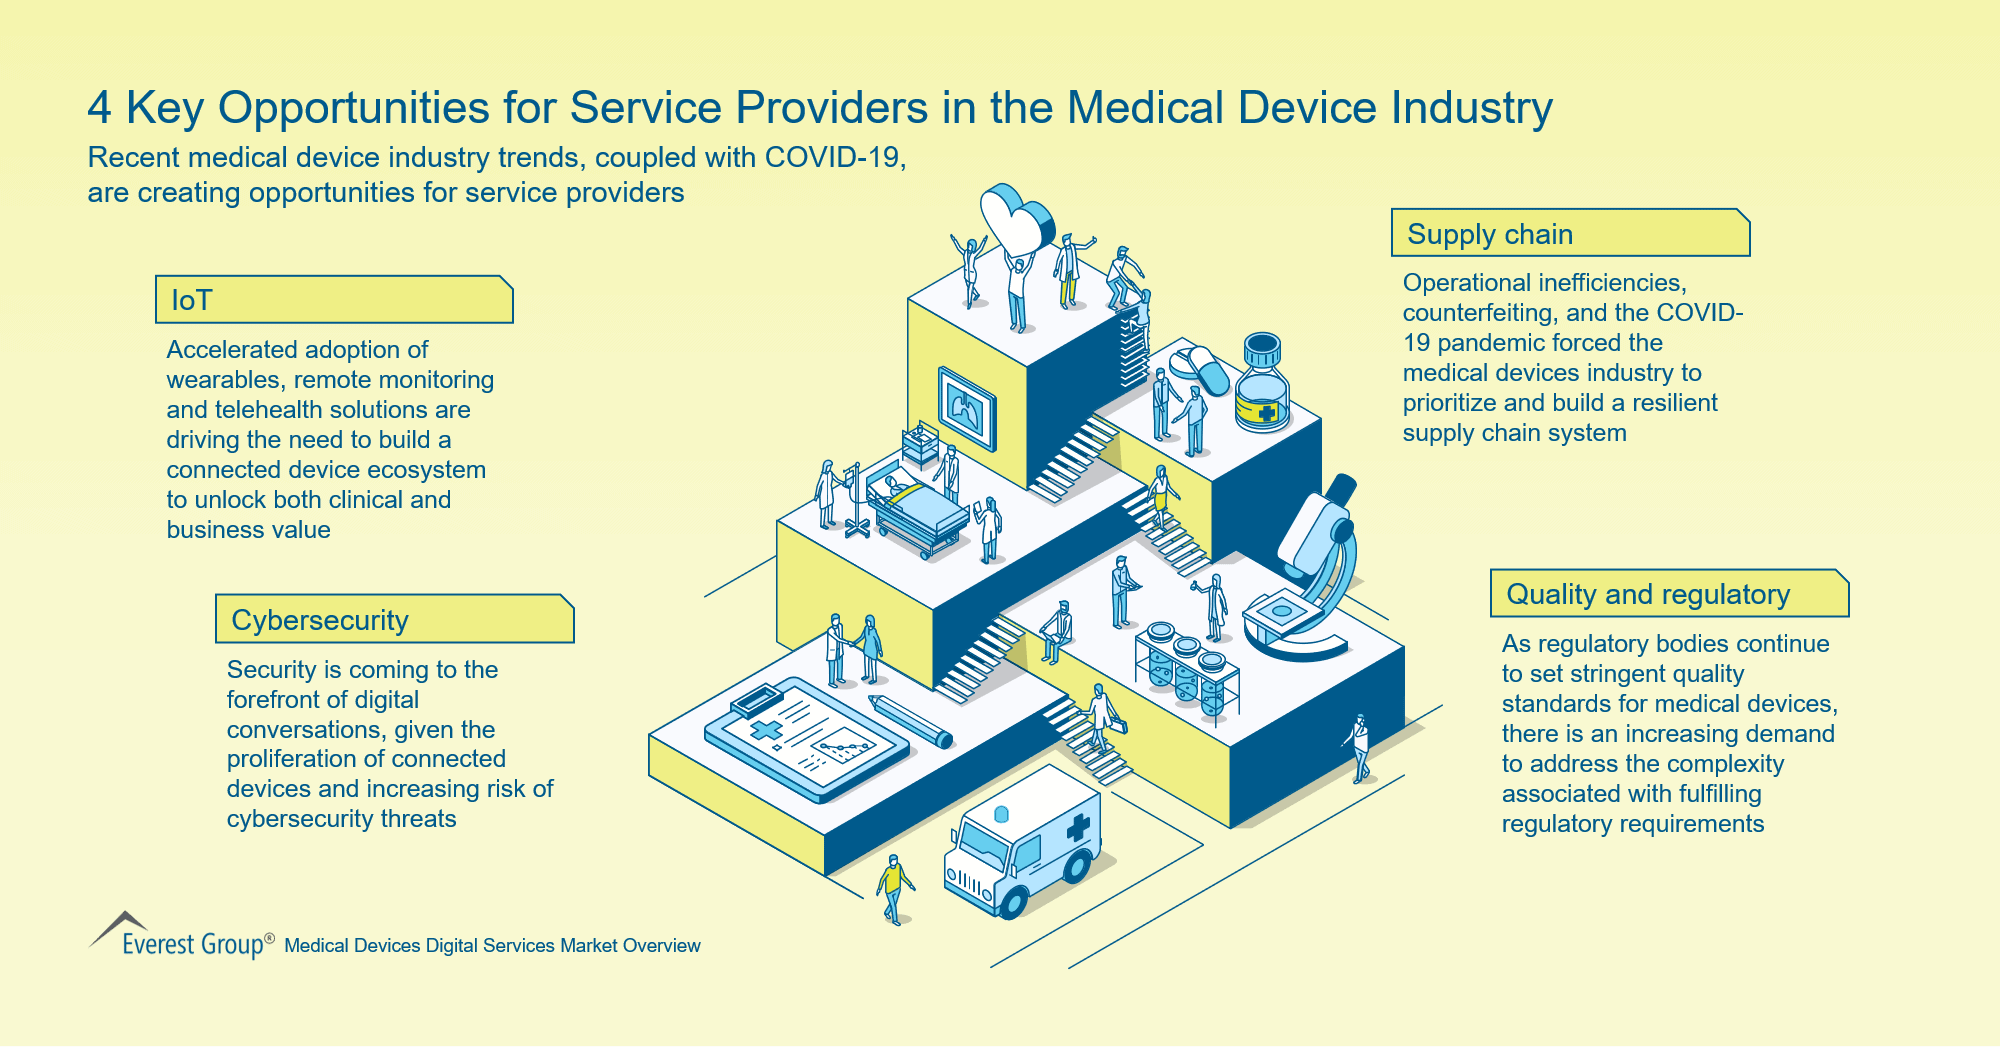 4 Key Opportunities for Service Providers in the Medical Device Industry